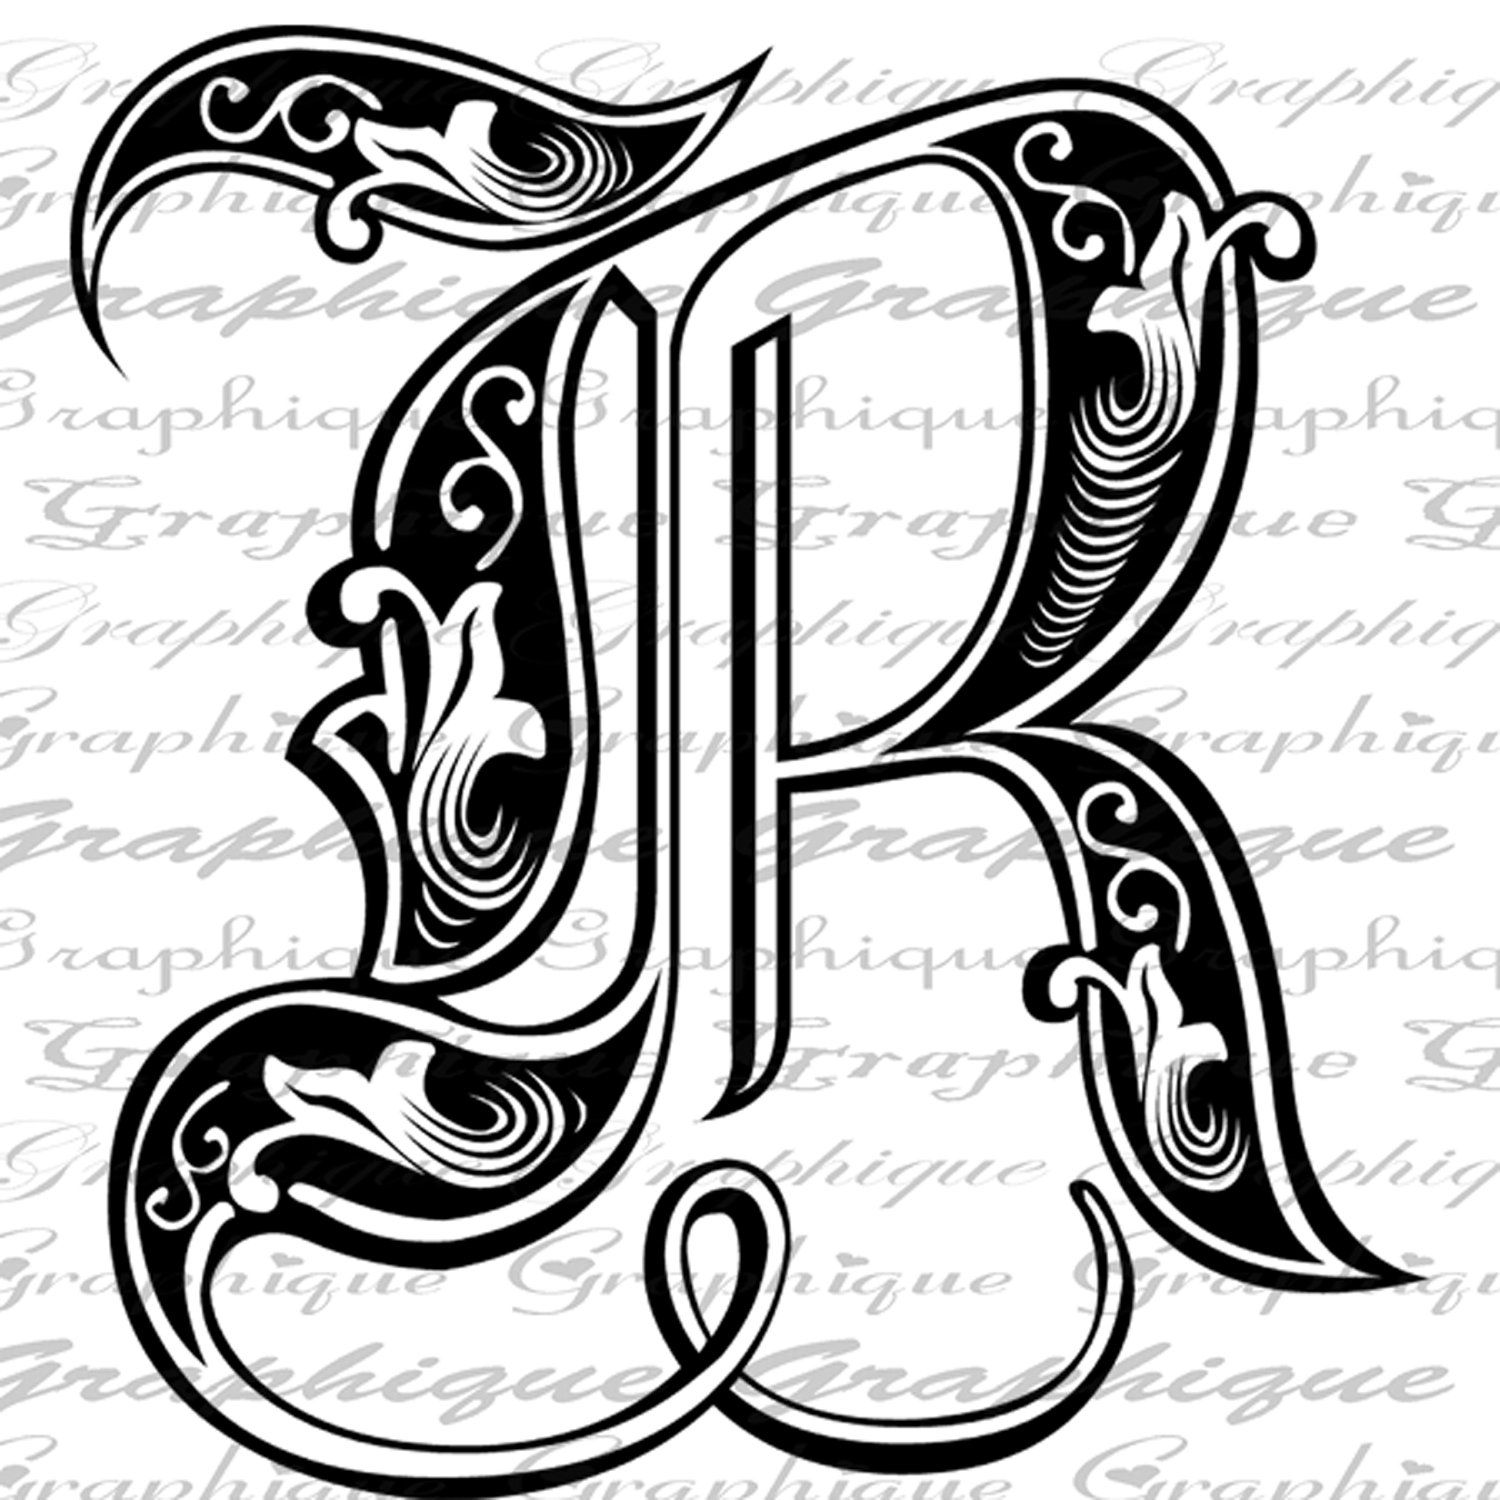 LETTER Initial R Monogram Old ENGRAVING Style Type Text